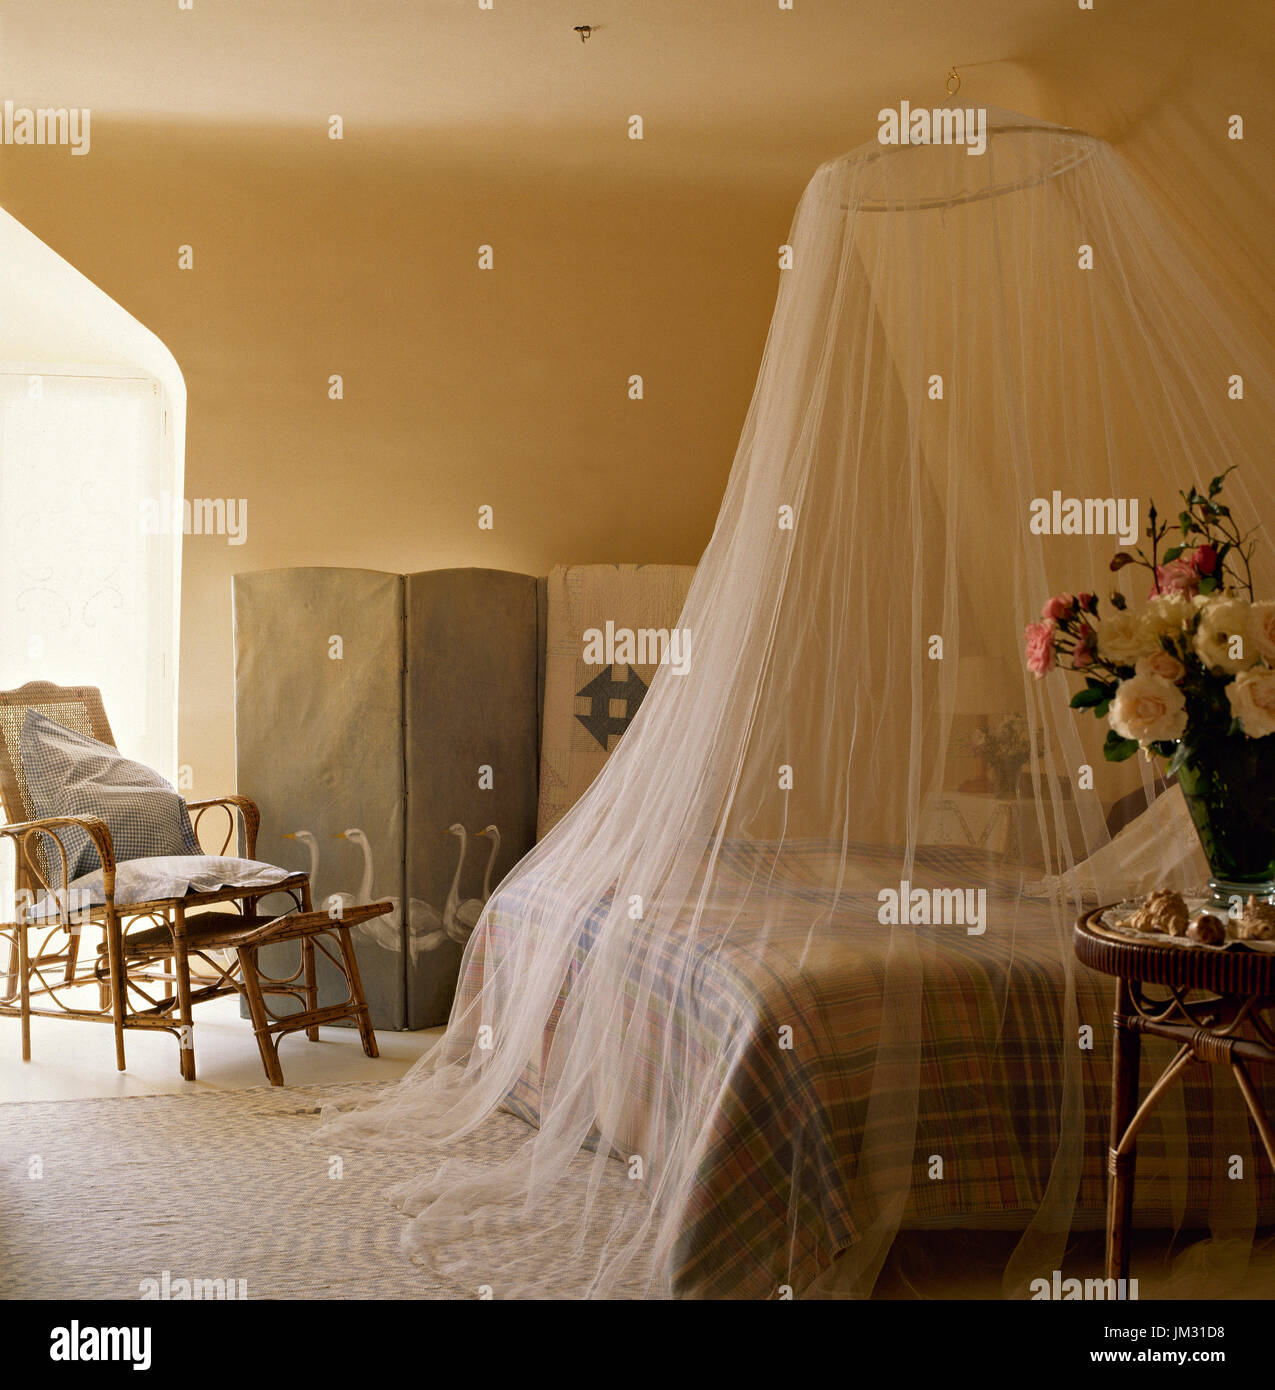 Country style bedroom with mosquito net - Stock Image